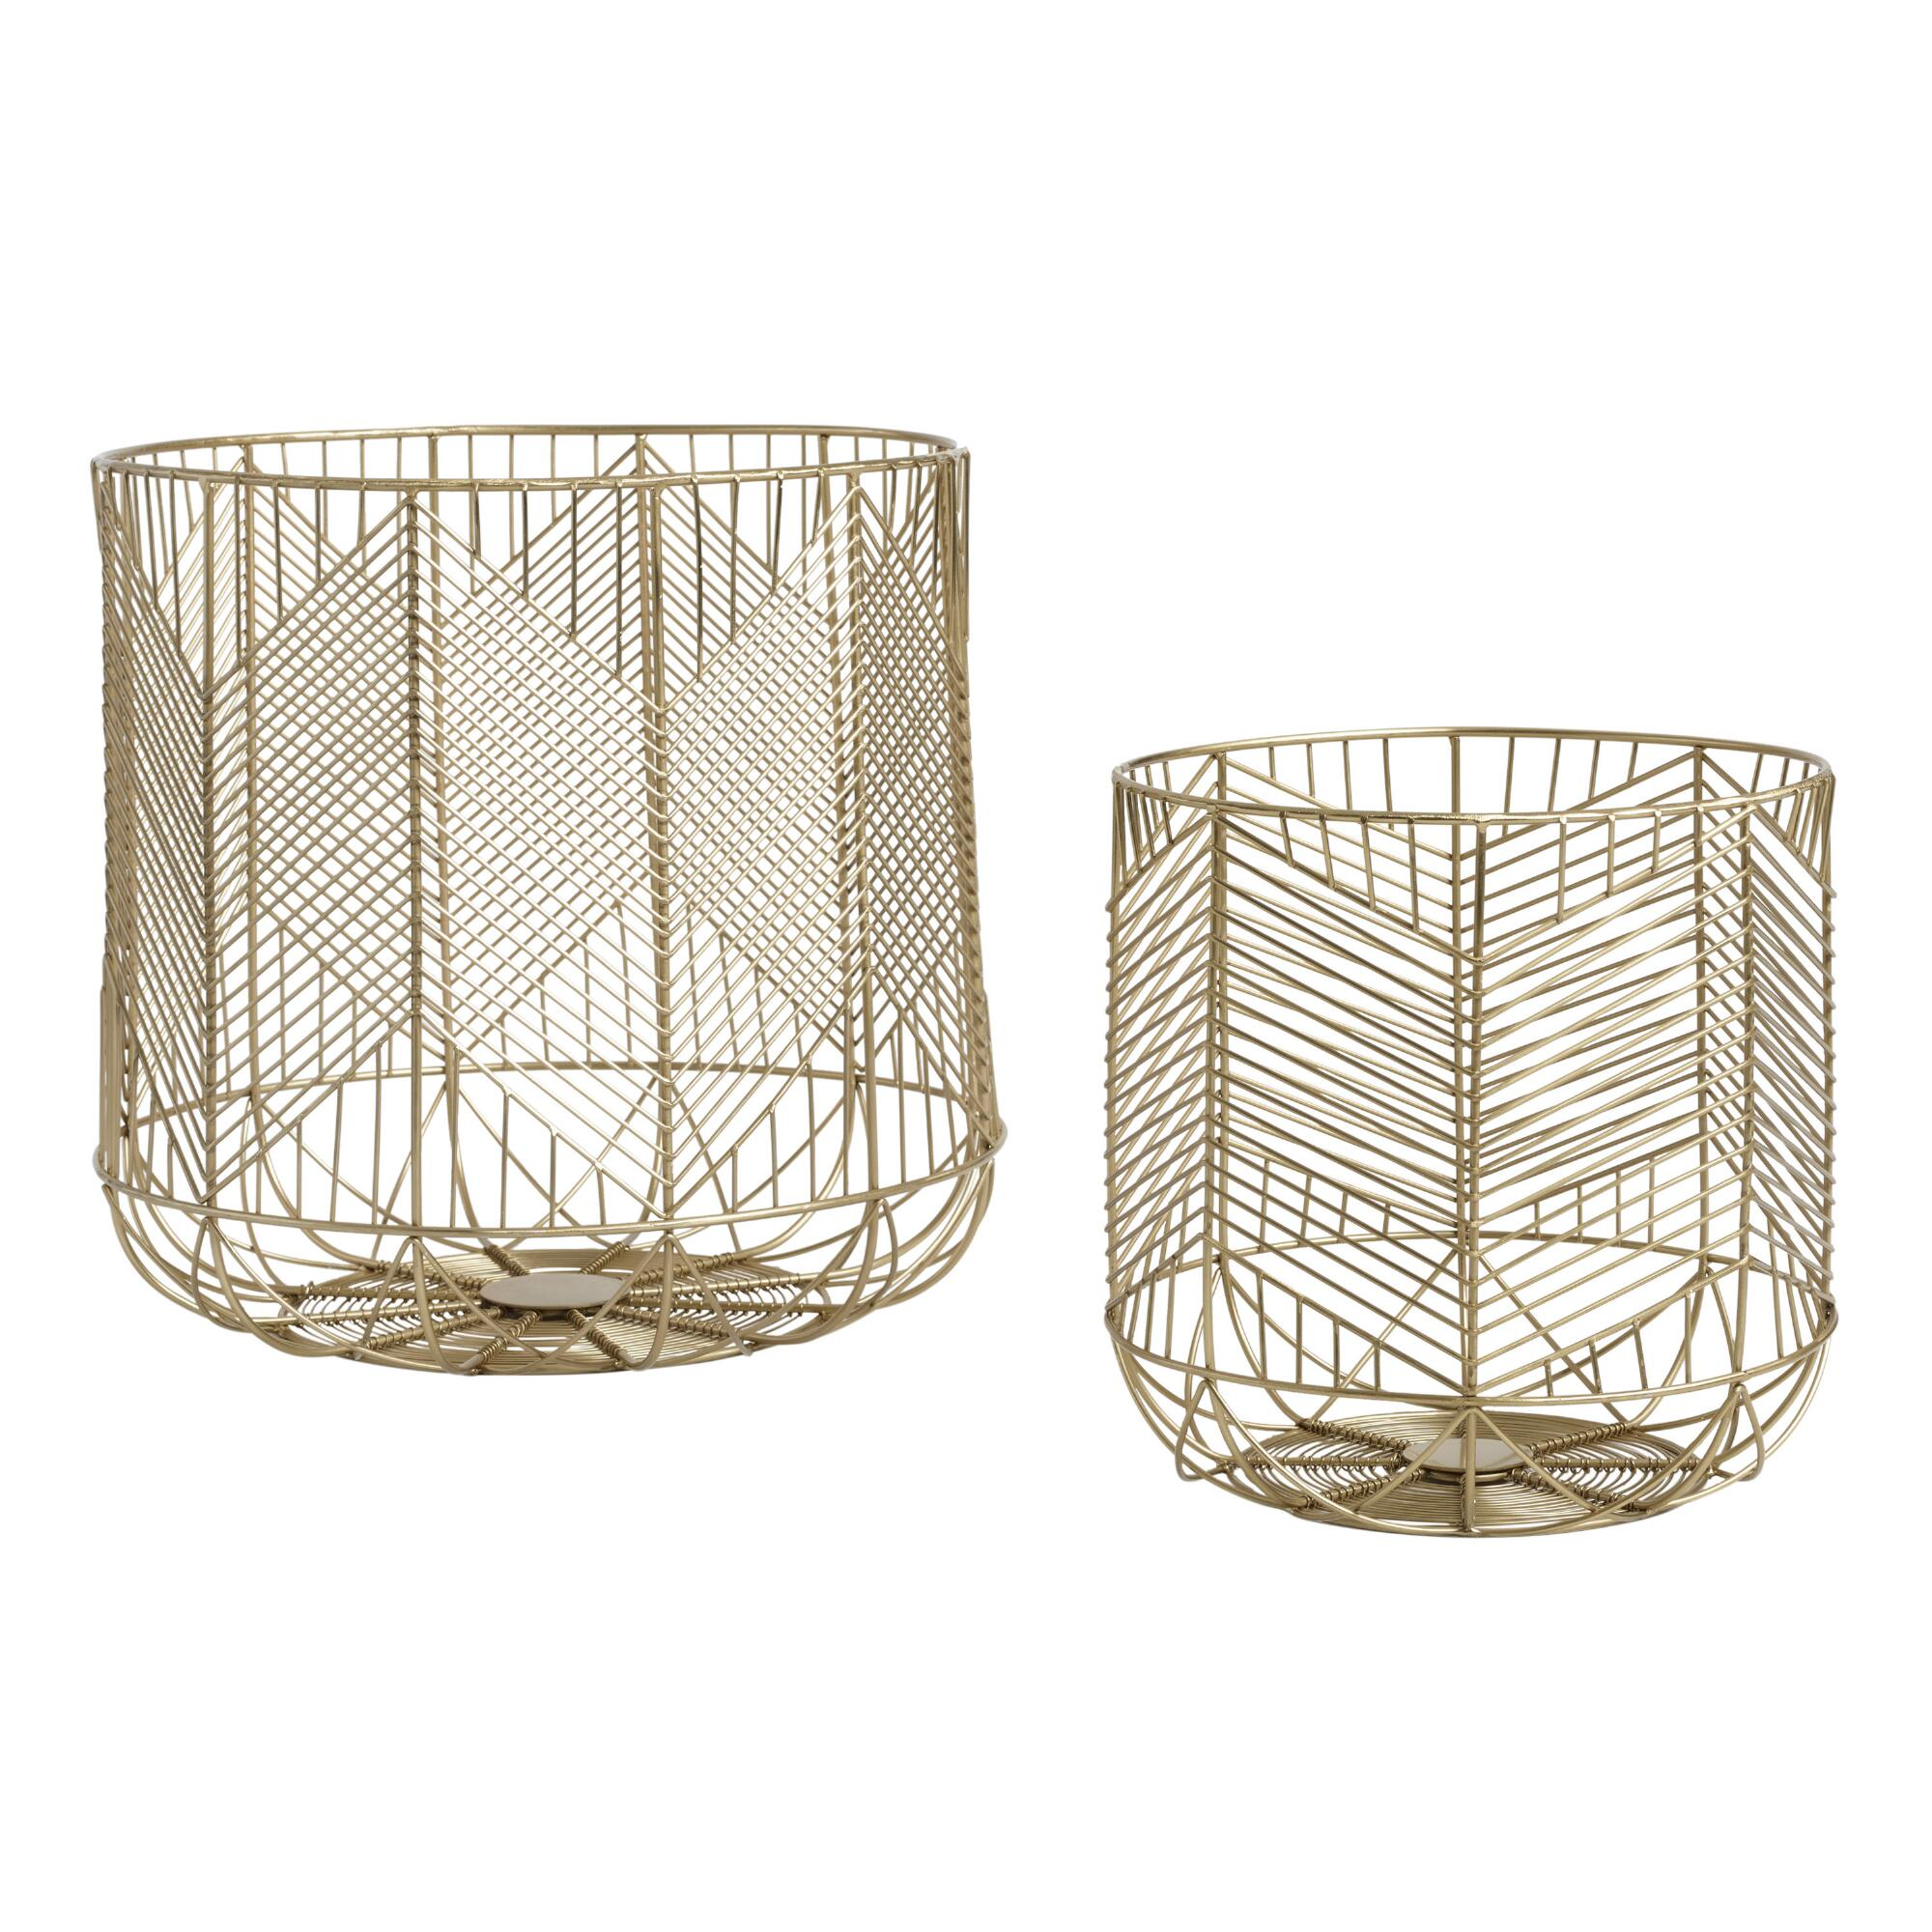 Gold Wire Geometric Reese Basket $29.99 - $39.99